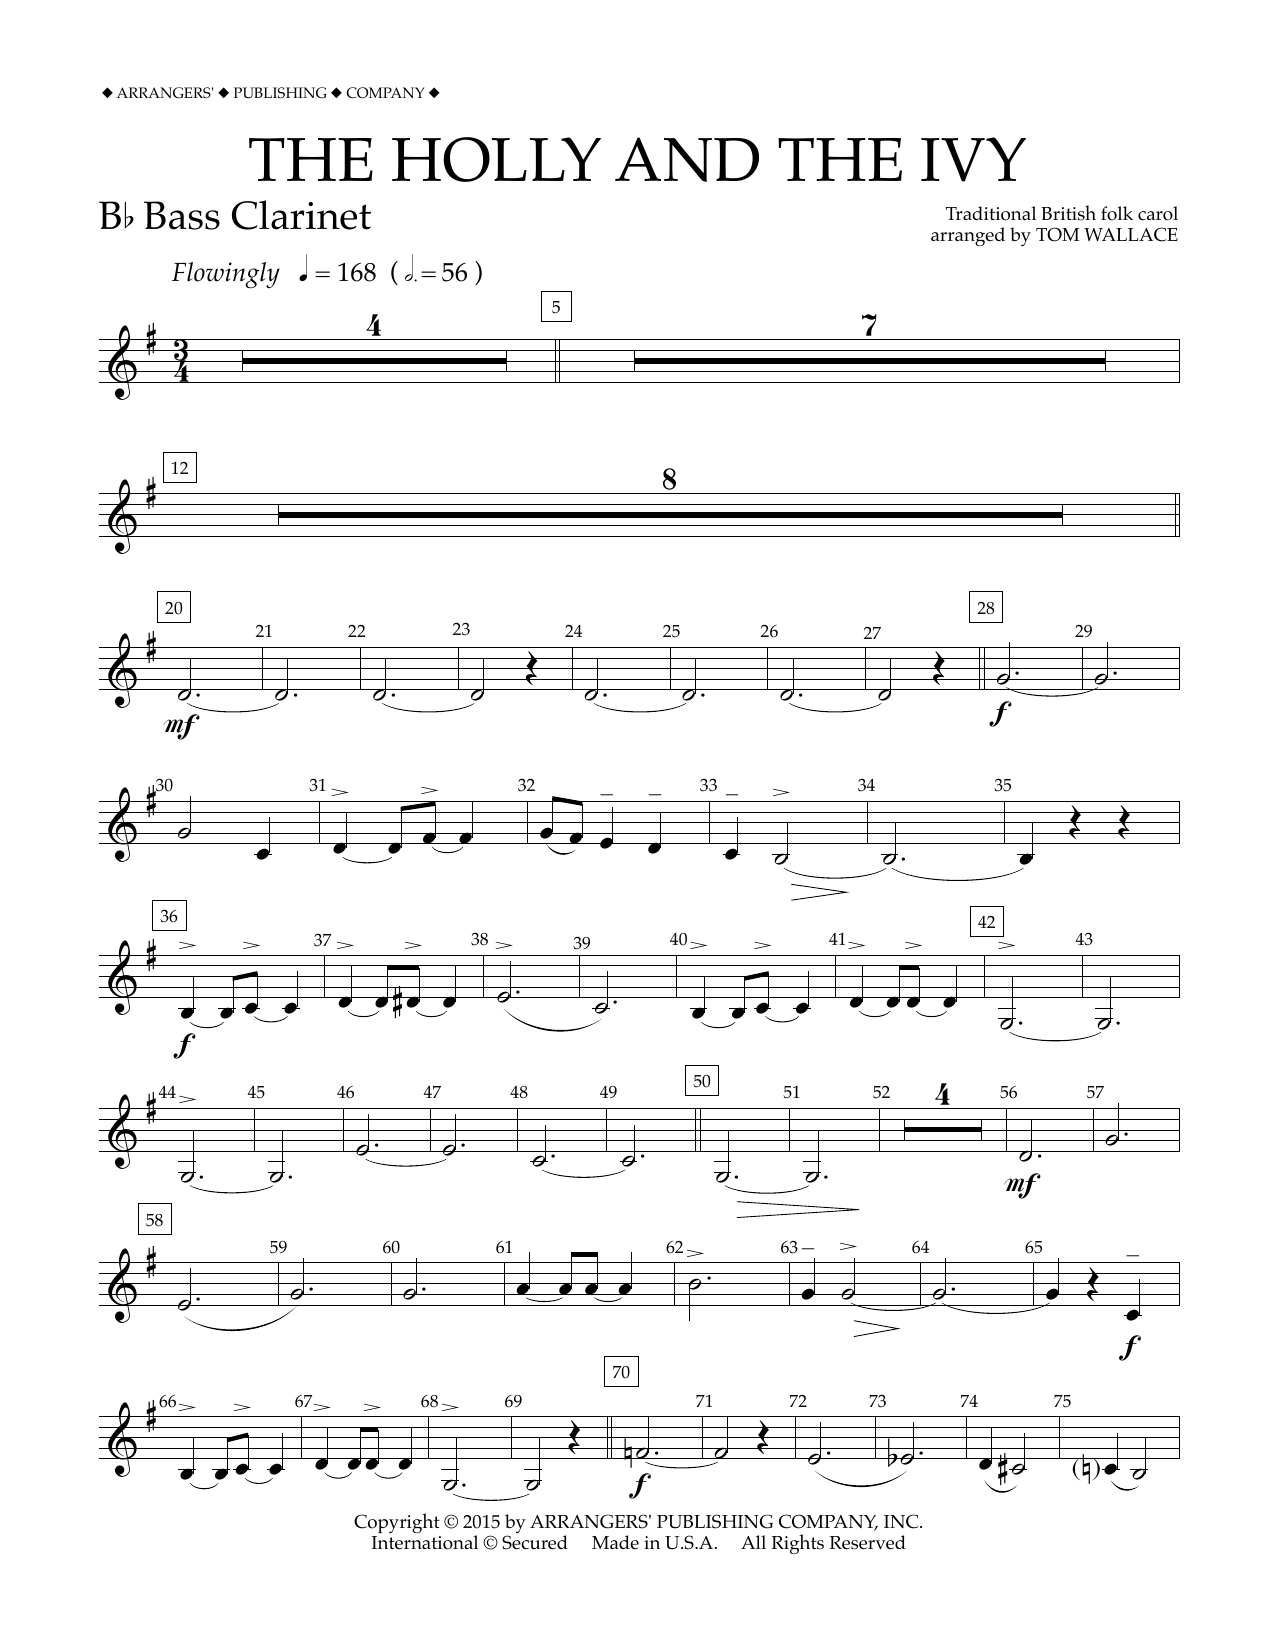 Tom Wallace The Holly and the Ivy - Bb Bass Clarinet sheet music notes and chords